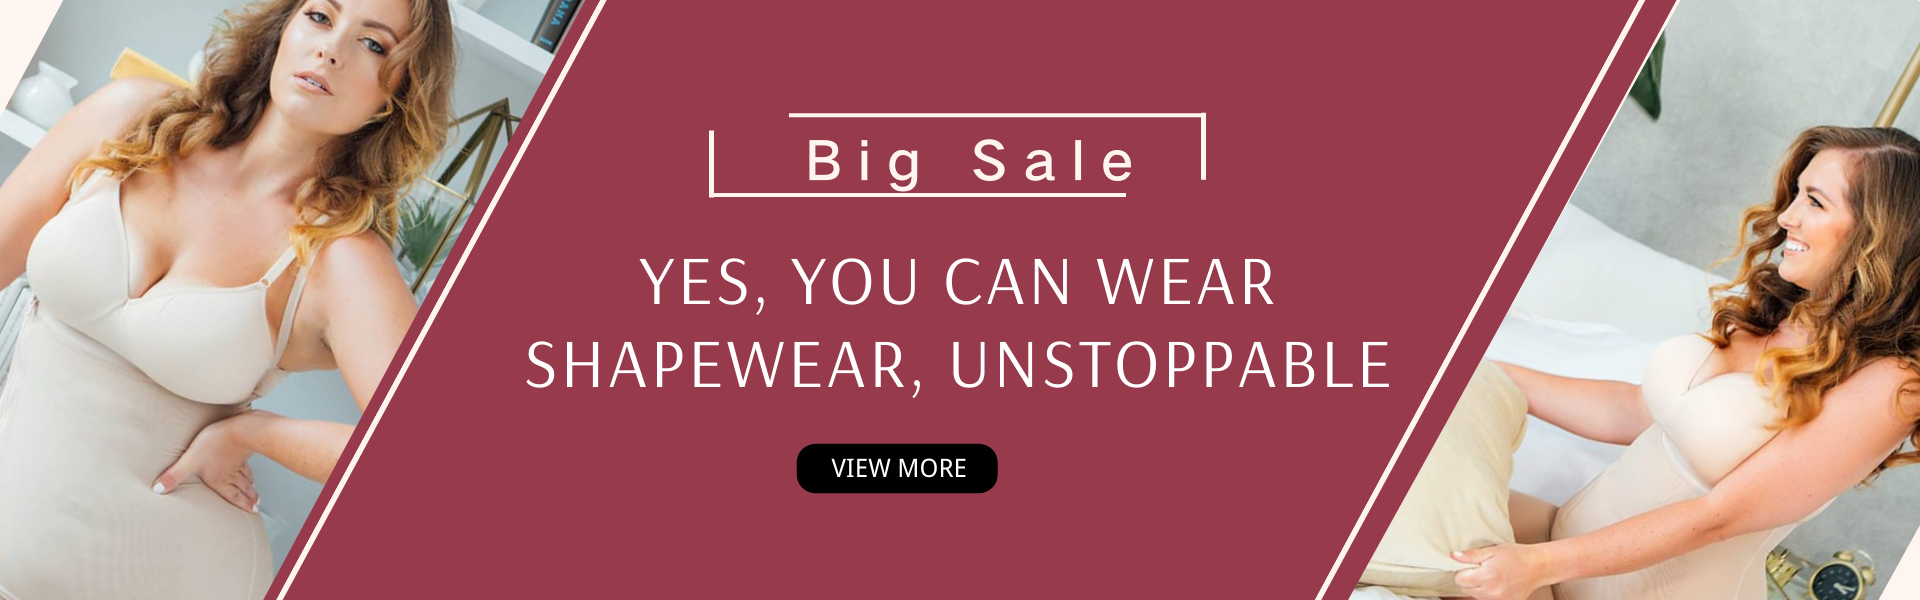 Yes, You Can Wear Shapewear, Unstoppable